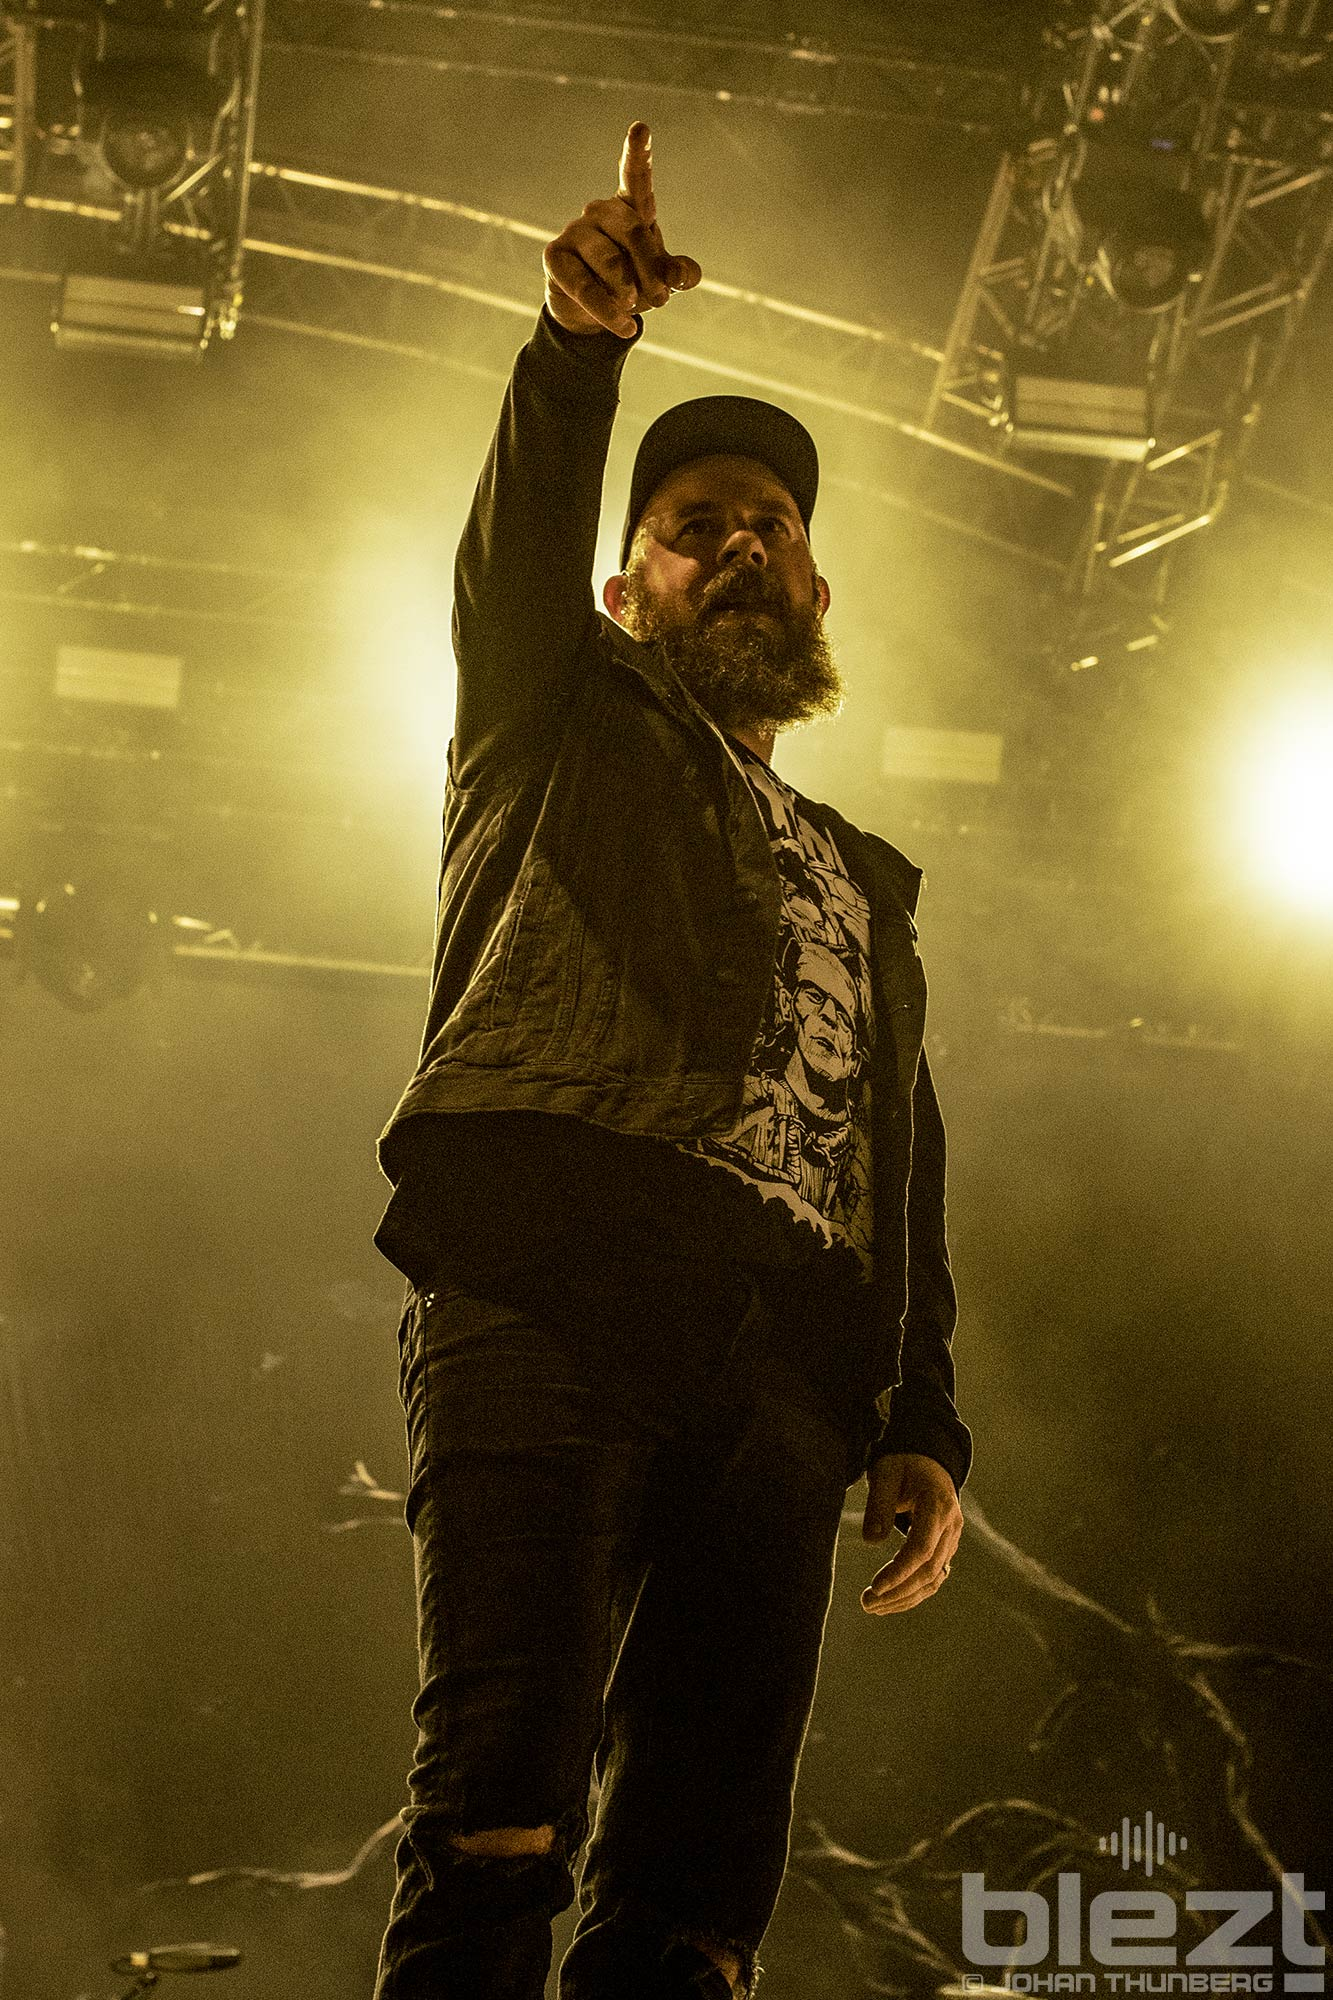 In Flames Borgholm Brinner 2019 BLEZT